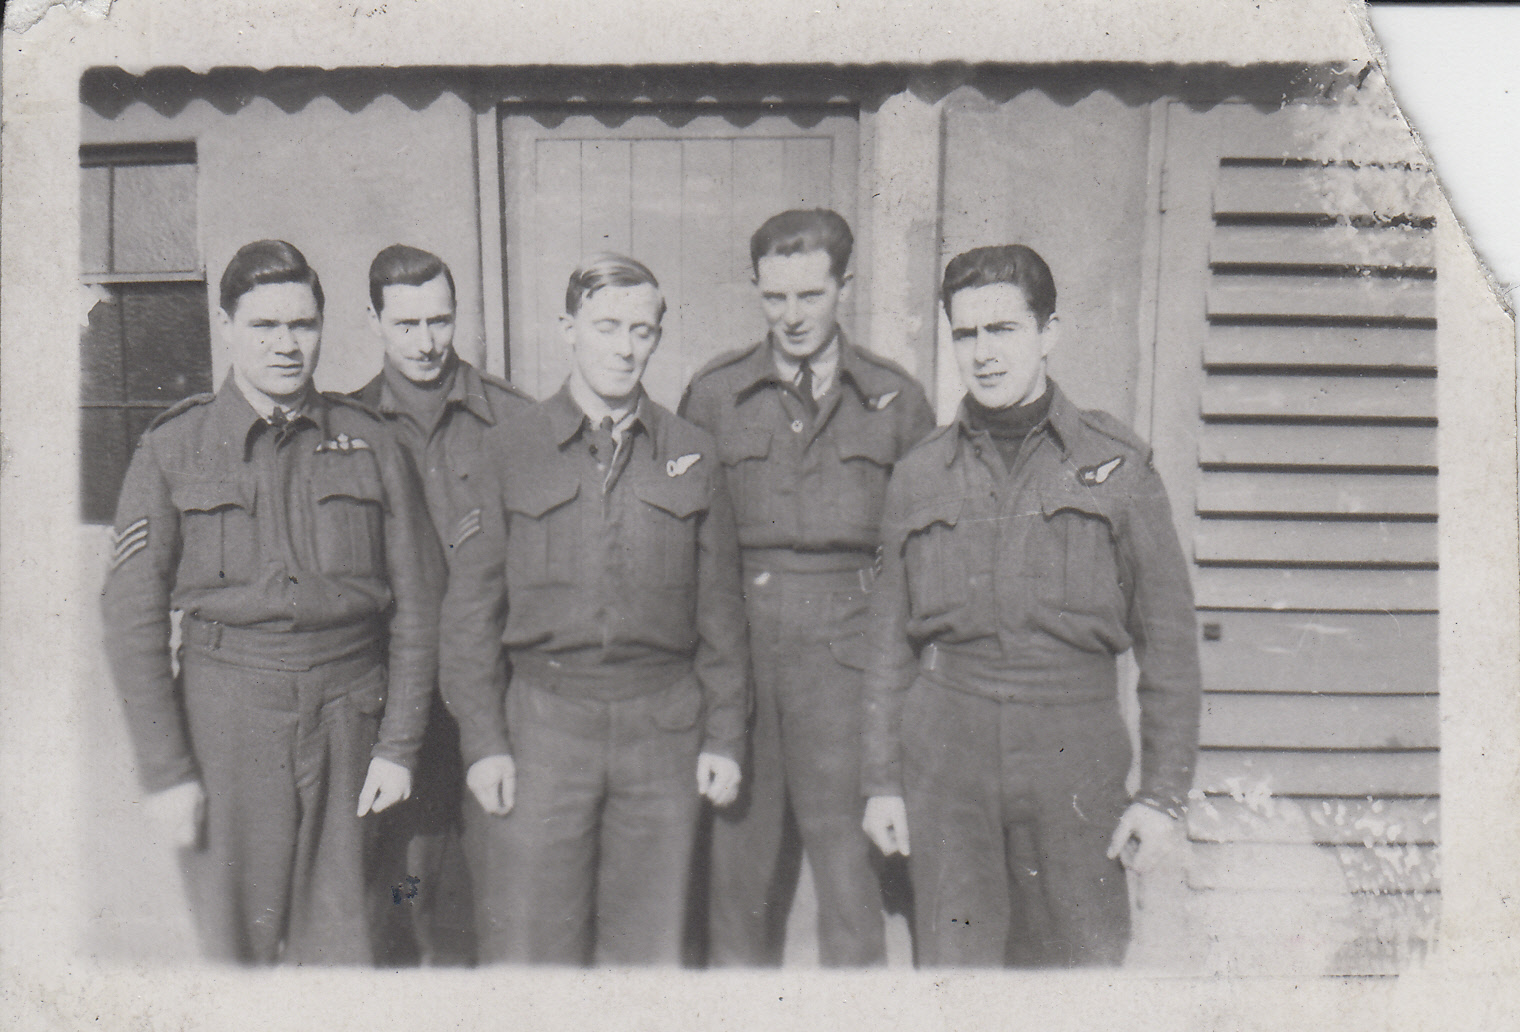 """Group Photo– Richard """"Spud"""" Talman, Jack Stokes, Lawrence Ford, Lloyd """"Red"""" Lafoy, Murray """"Tupp"""" Tupper.  Dishforth, UK with 426 Thunderbird Squadron.  1943.  Talman would be KIA as a 2nd Dickie (pilot) training to take out his crew on a bombing run in the Happy Valley."""